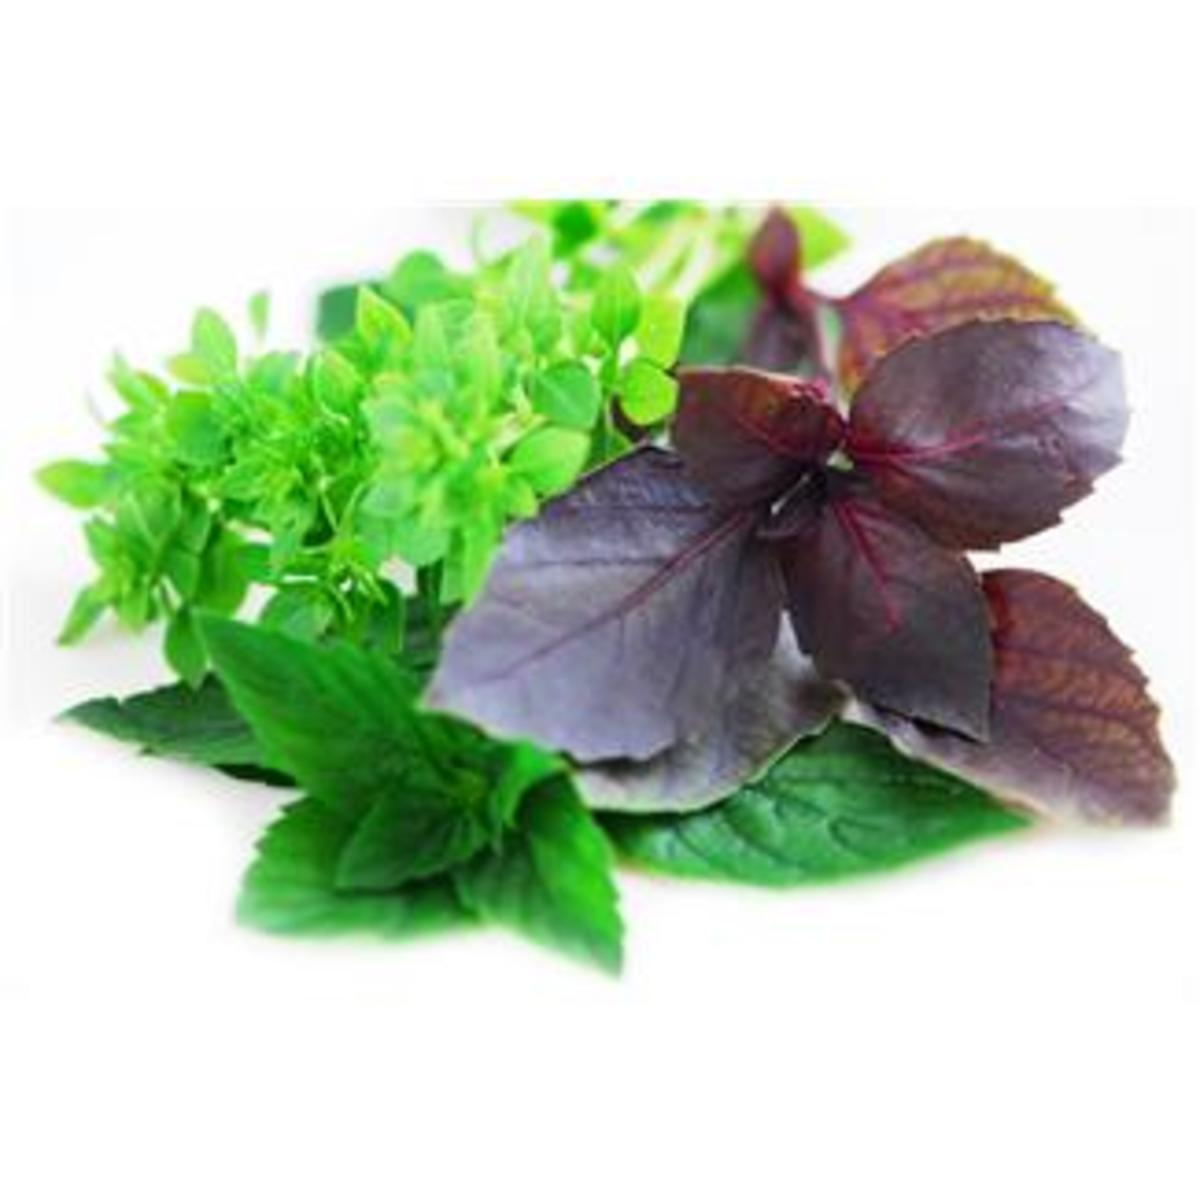 Essential oils come from herbs like peppermint, basil, and thyme.